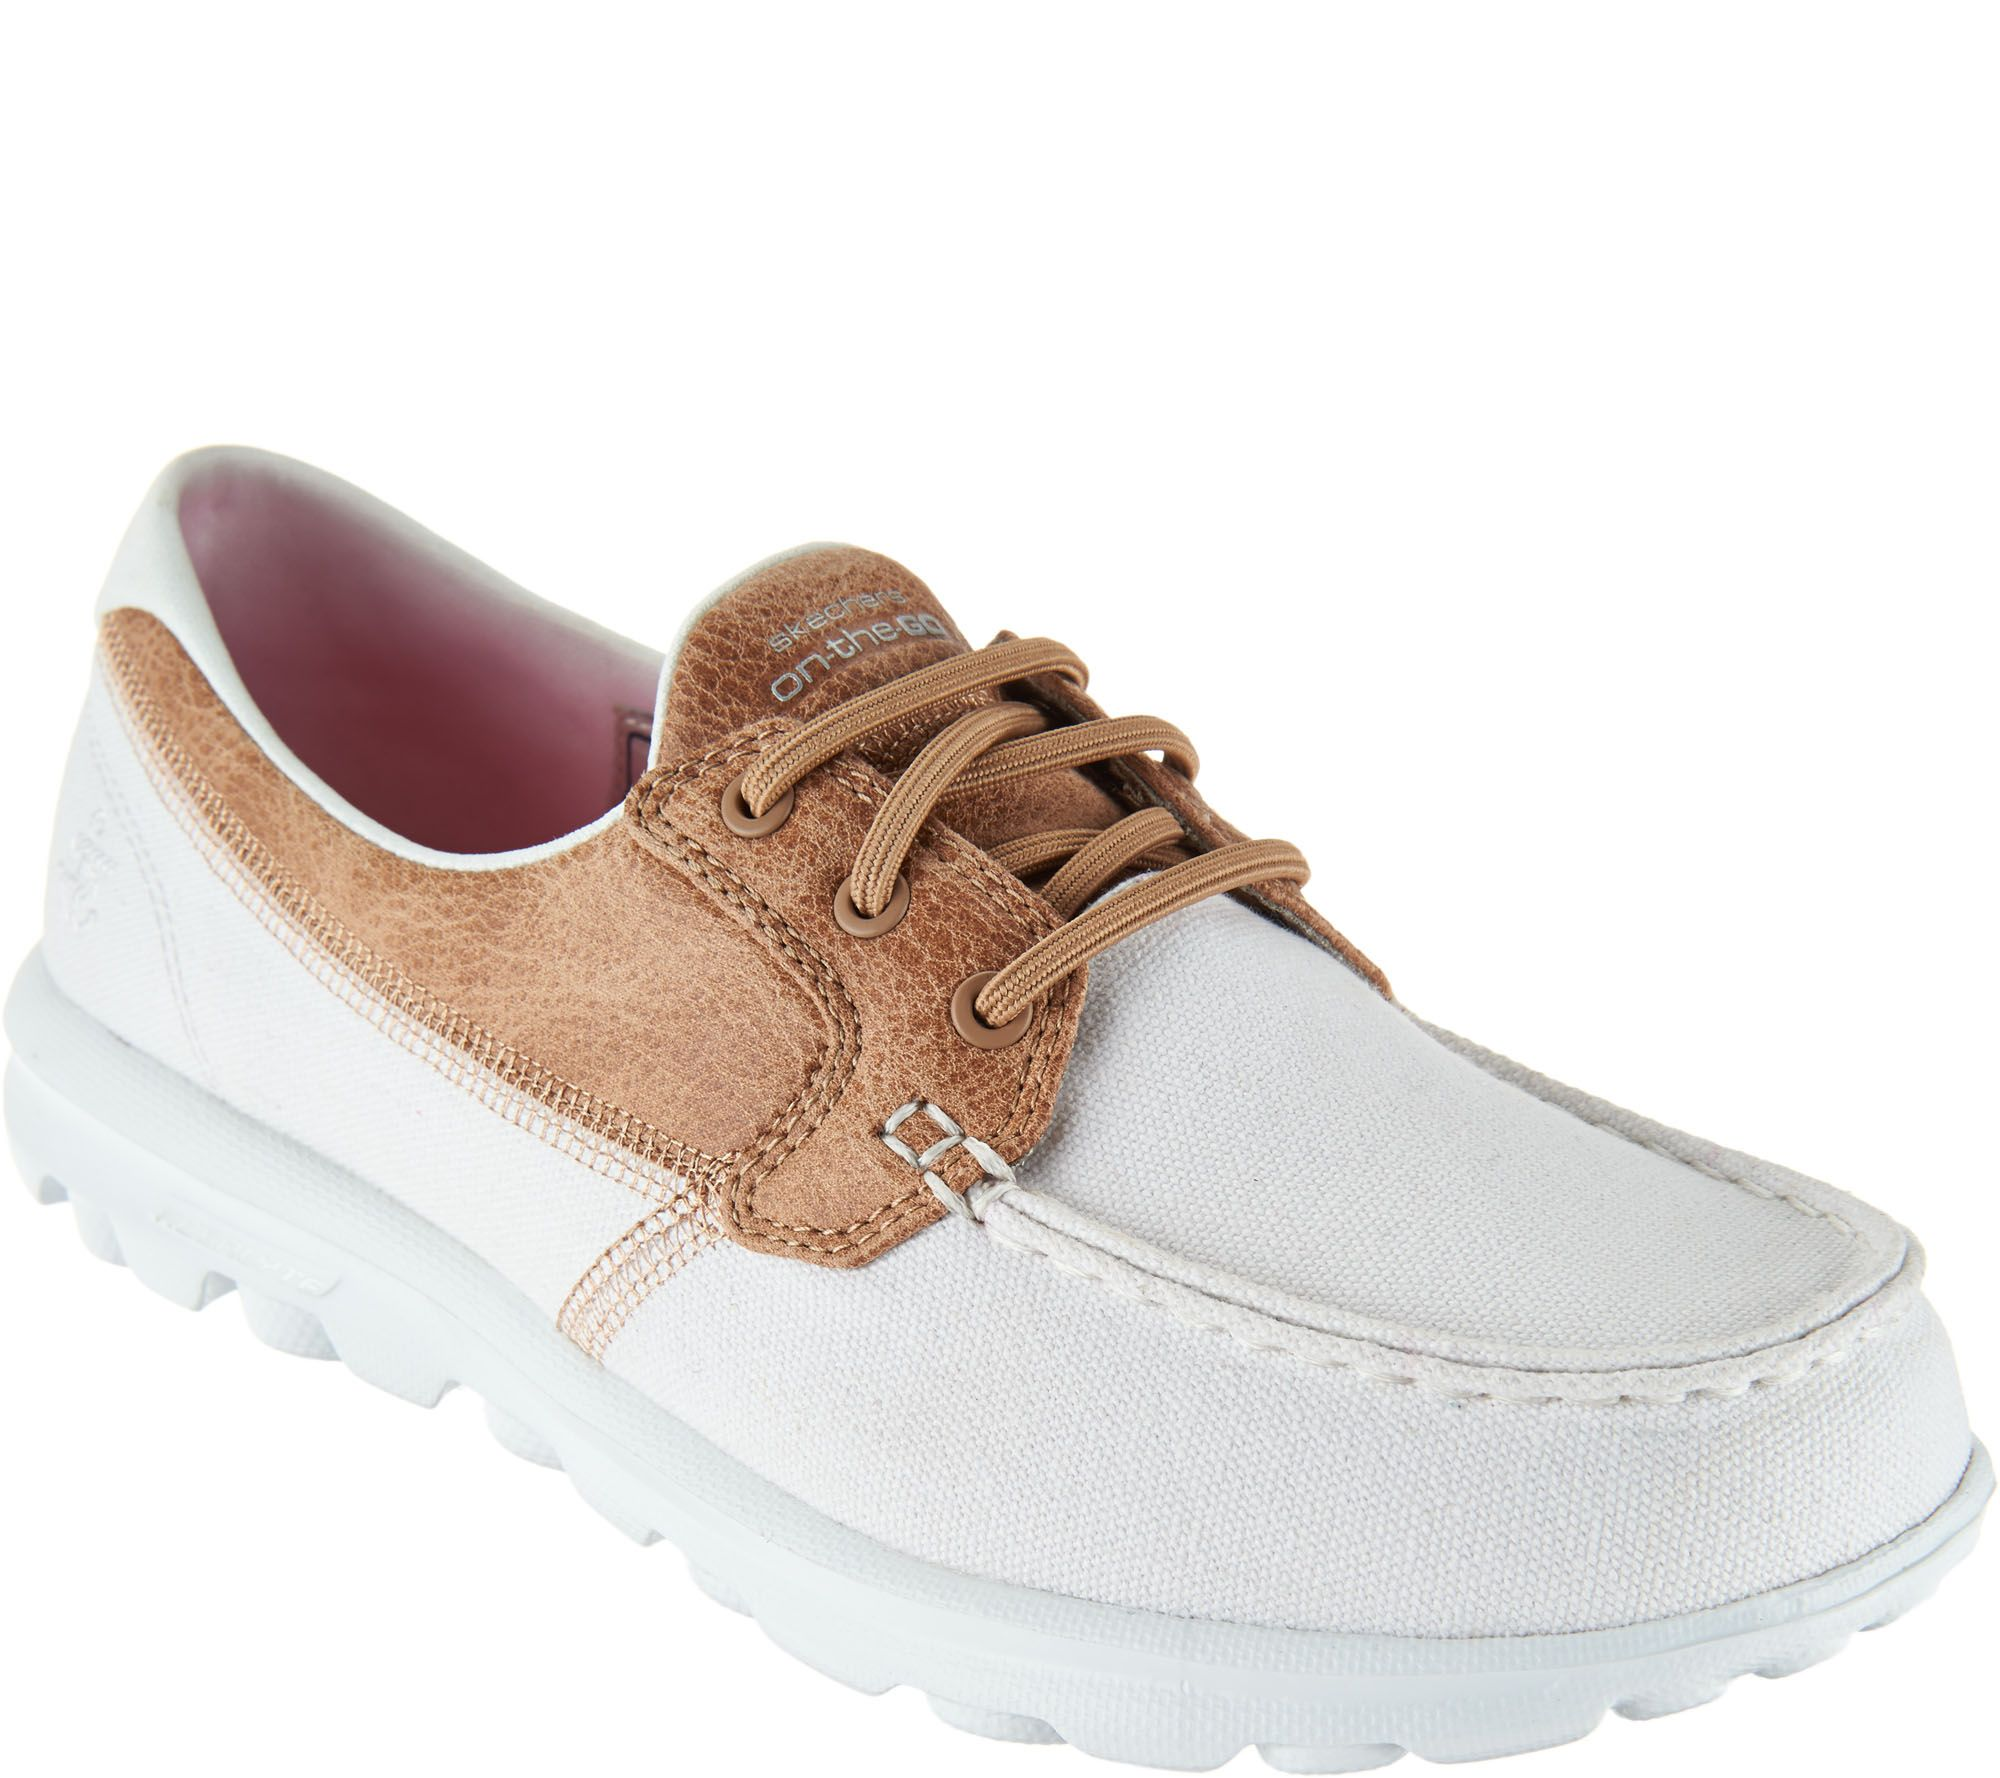 Skechers On-the-GO Boat Shoes With Goga Mat